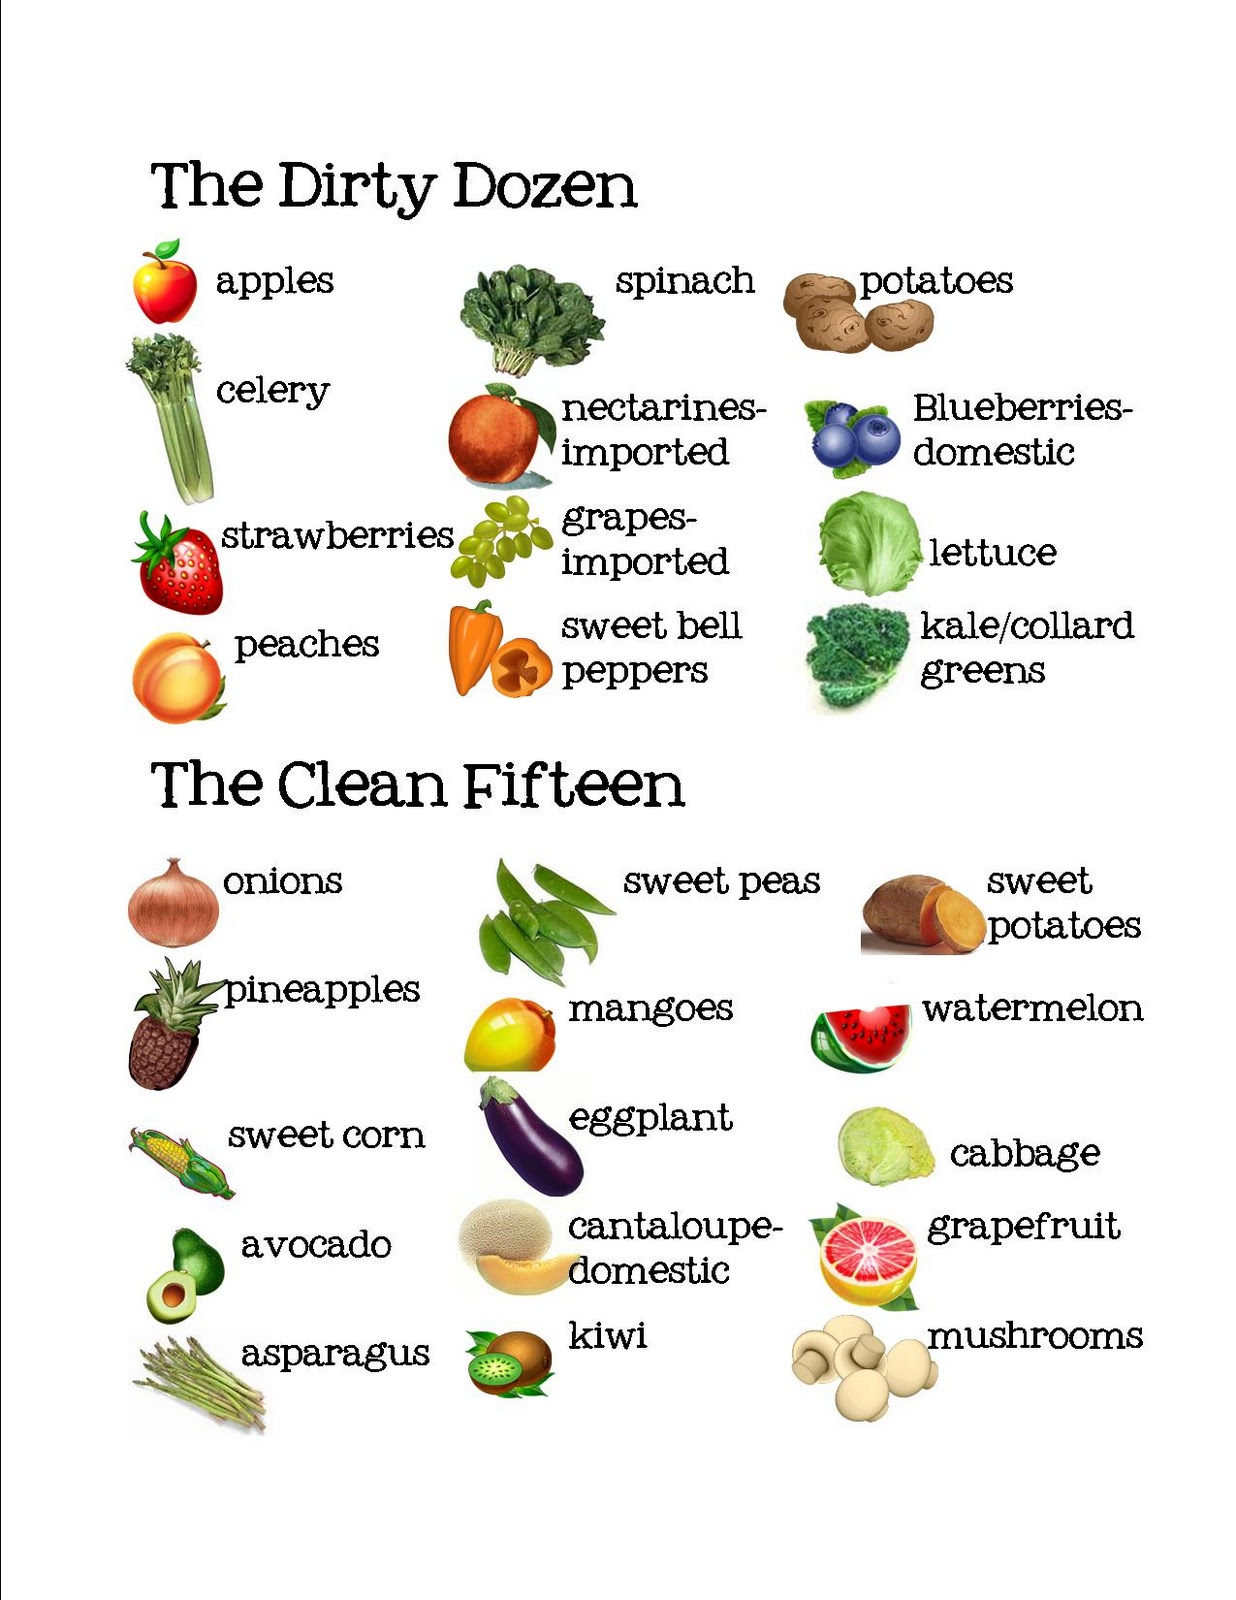 12 Vegetables To Plant In August Zone 9: Fru-Gal.org: Introducing The Dirty Dozen And Clean Fifteen